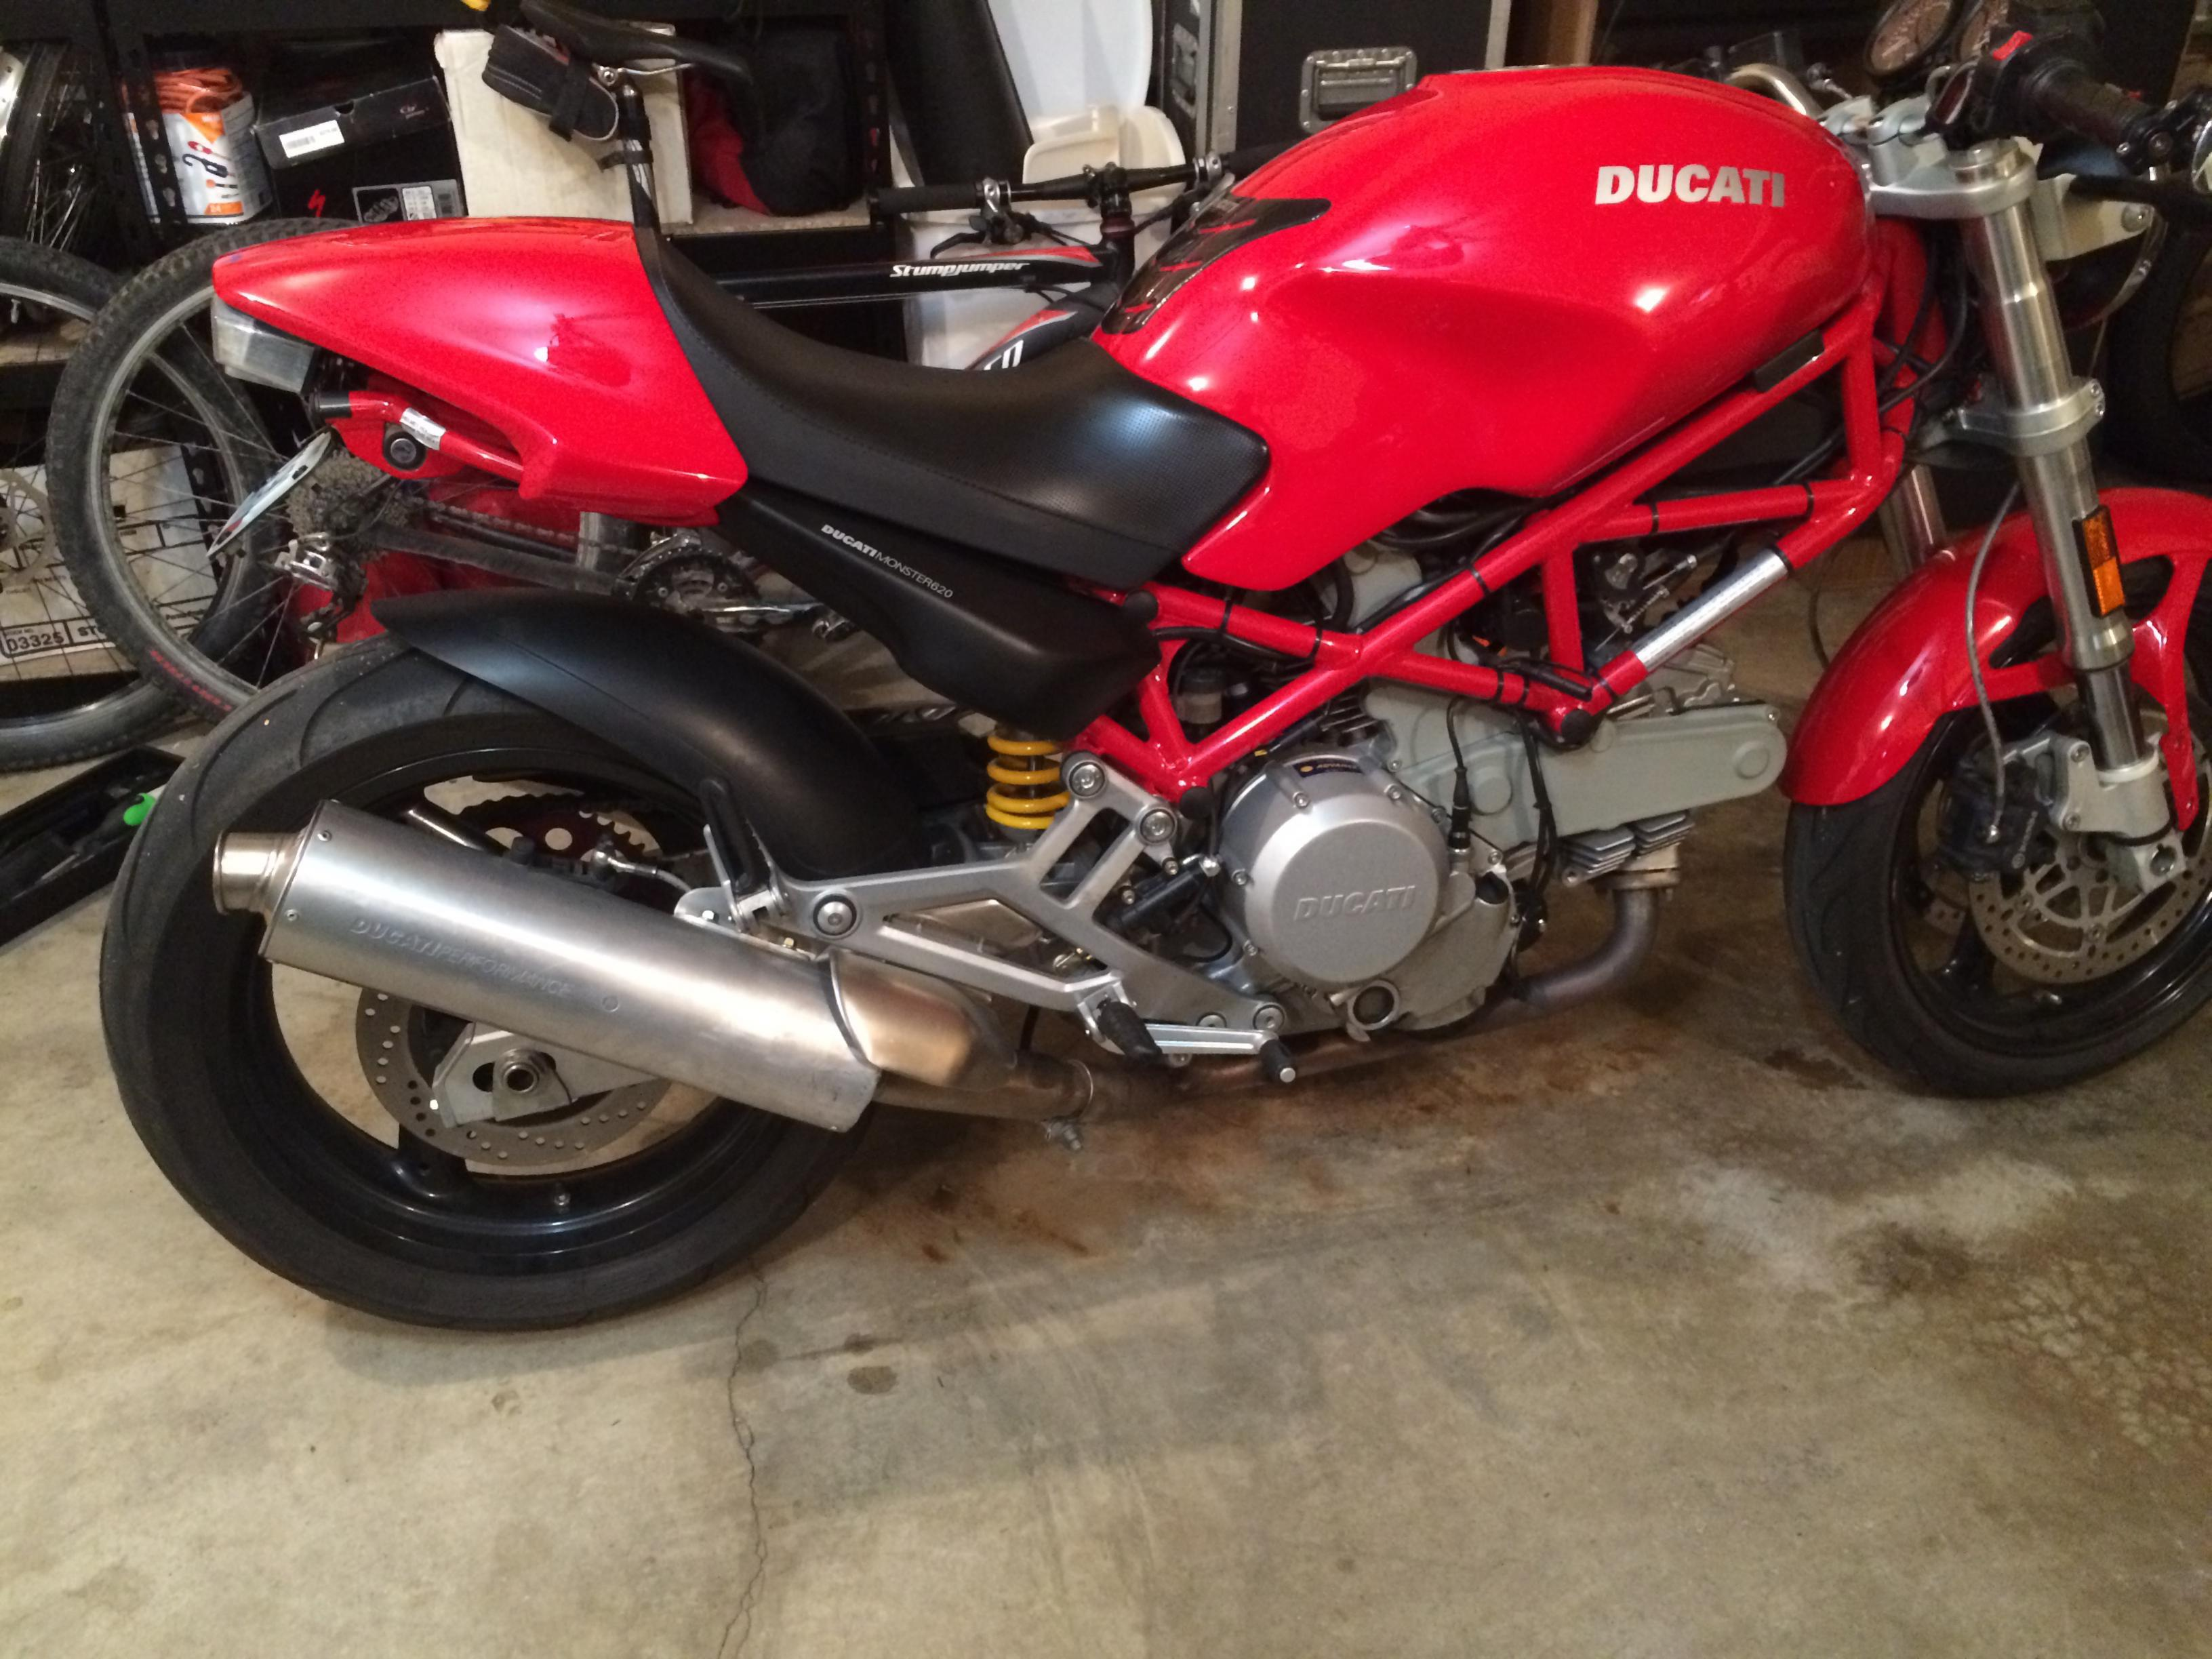 2005 ducati monster 620ie the ultimate ducati forum. Black Bedroom Furniture Sets. Home Design Ideas